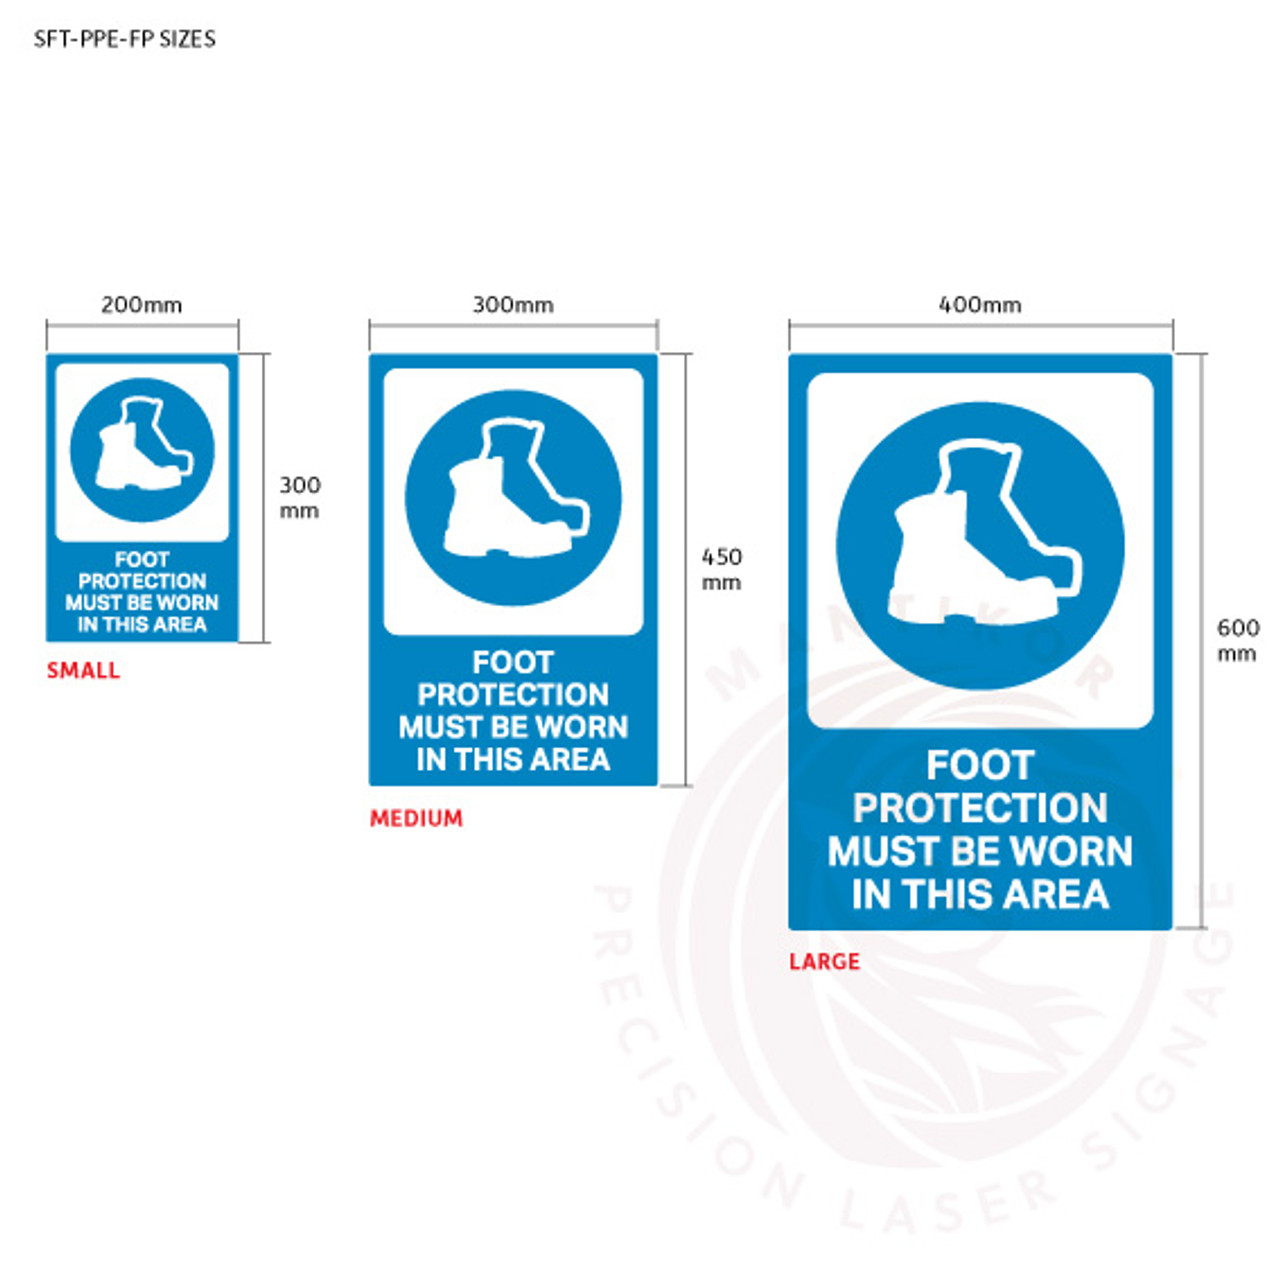 PPE Safety Signage - Foot protection sign sizes